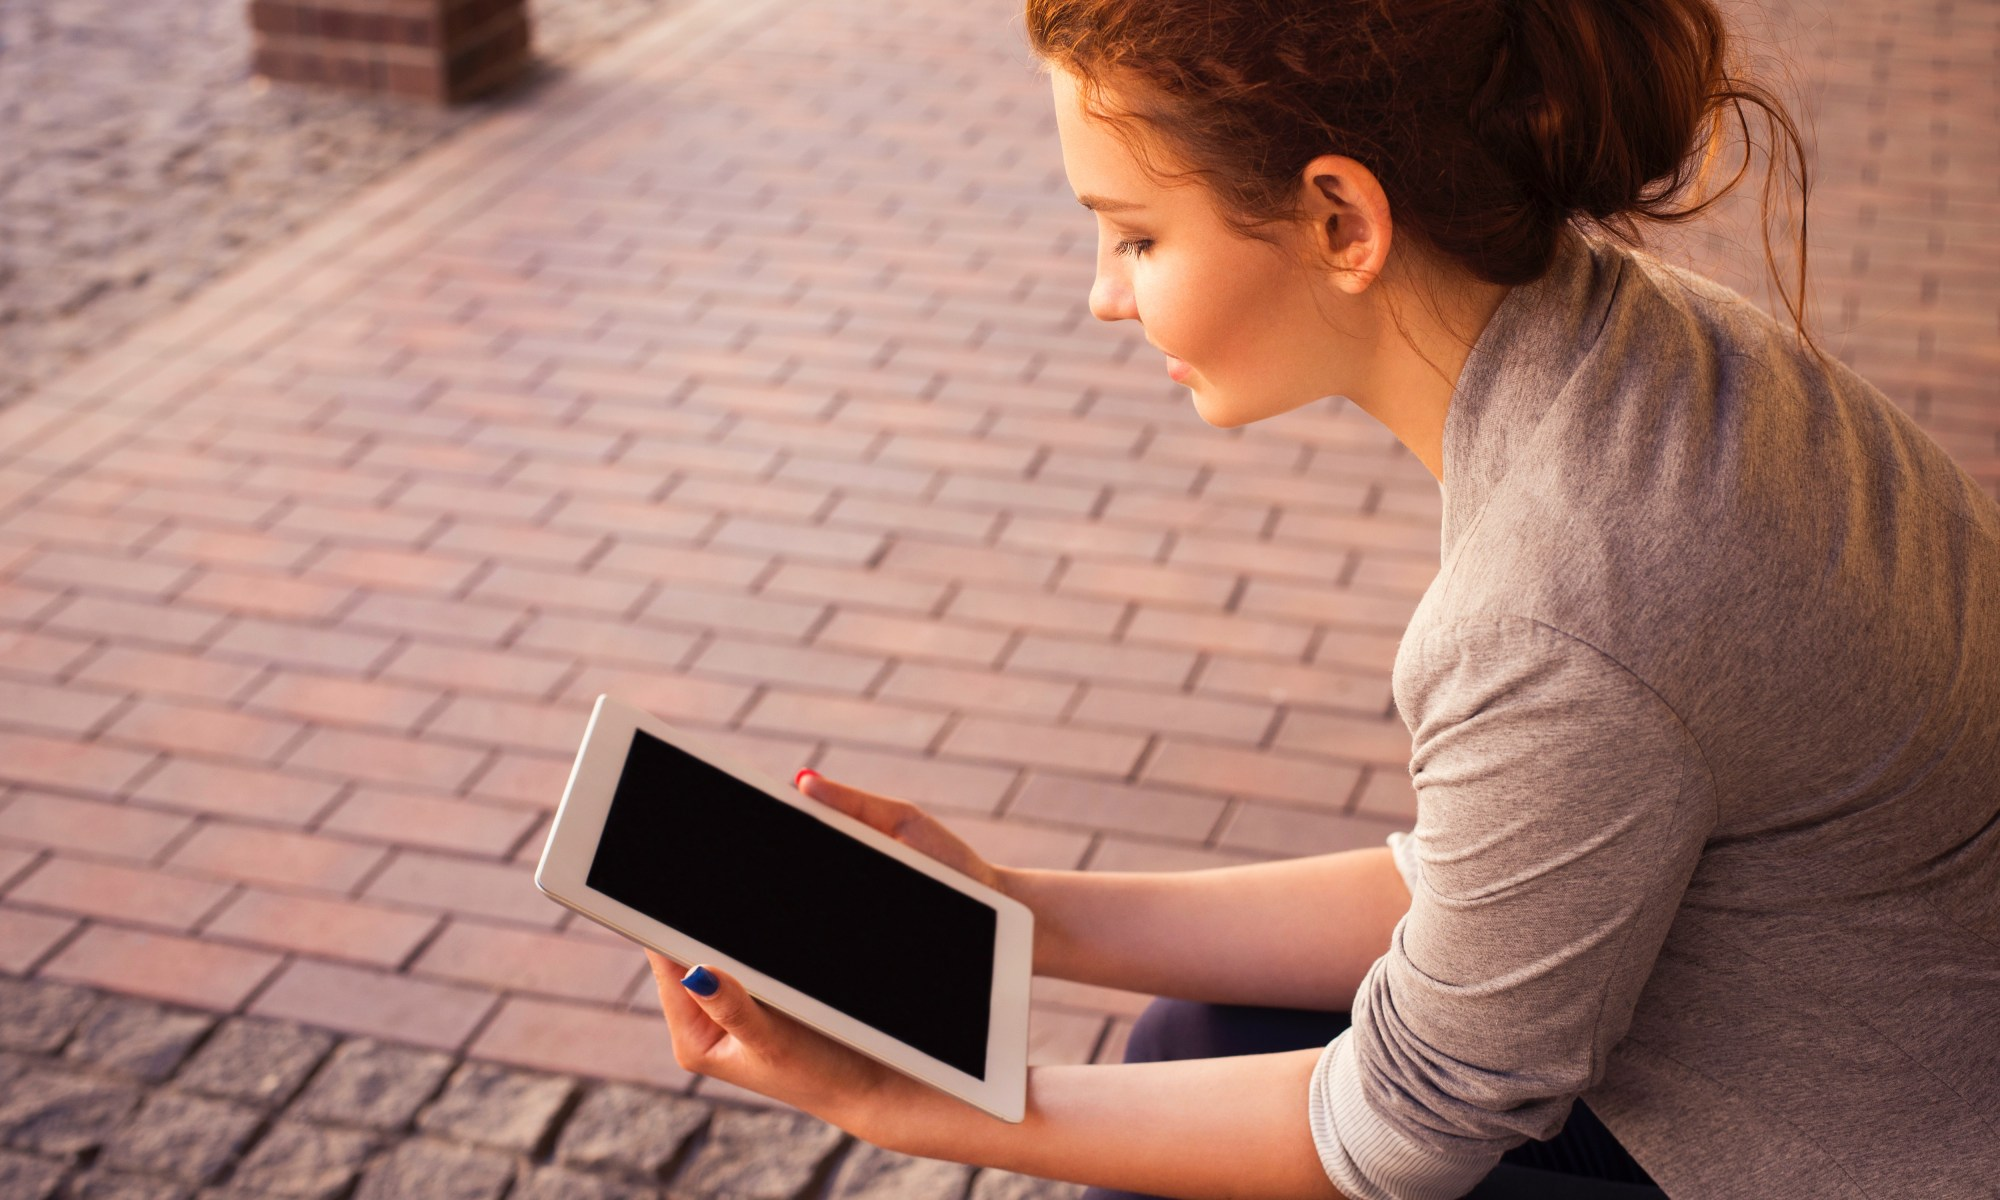 Young woman on sidewalk with tablet